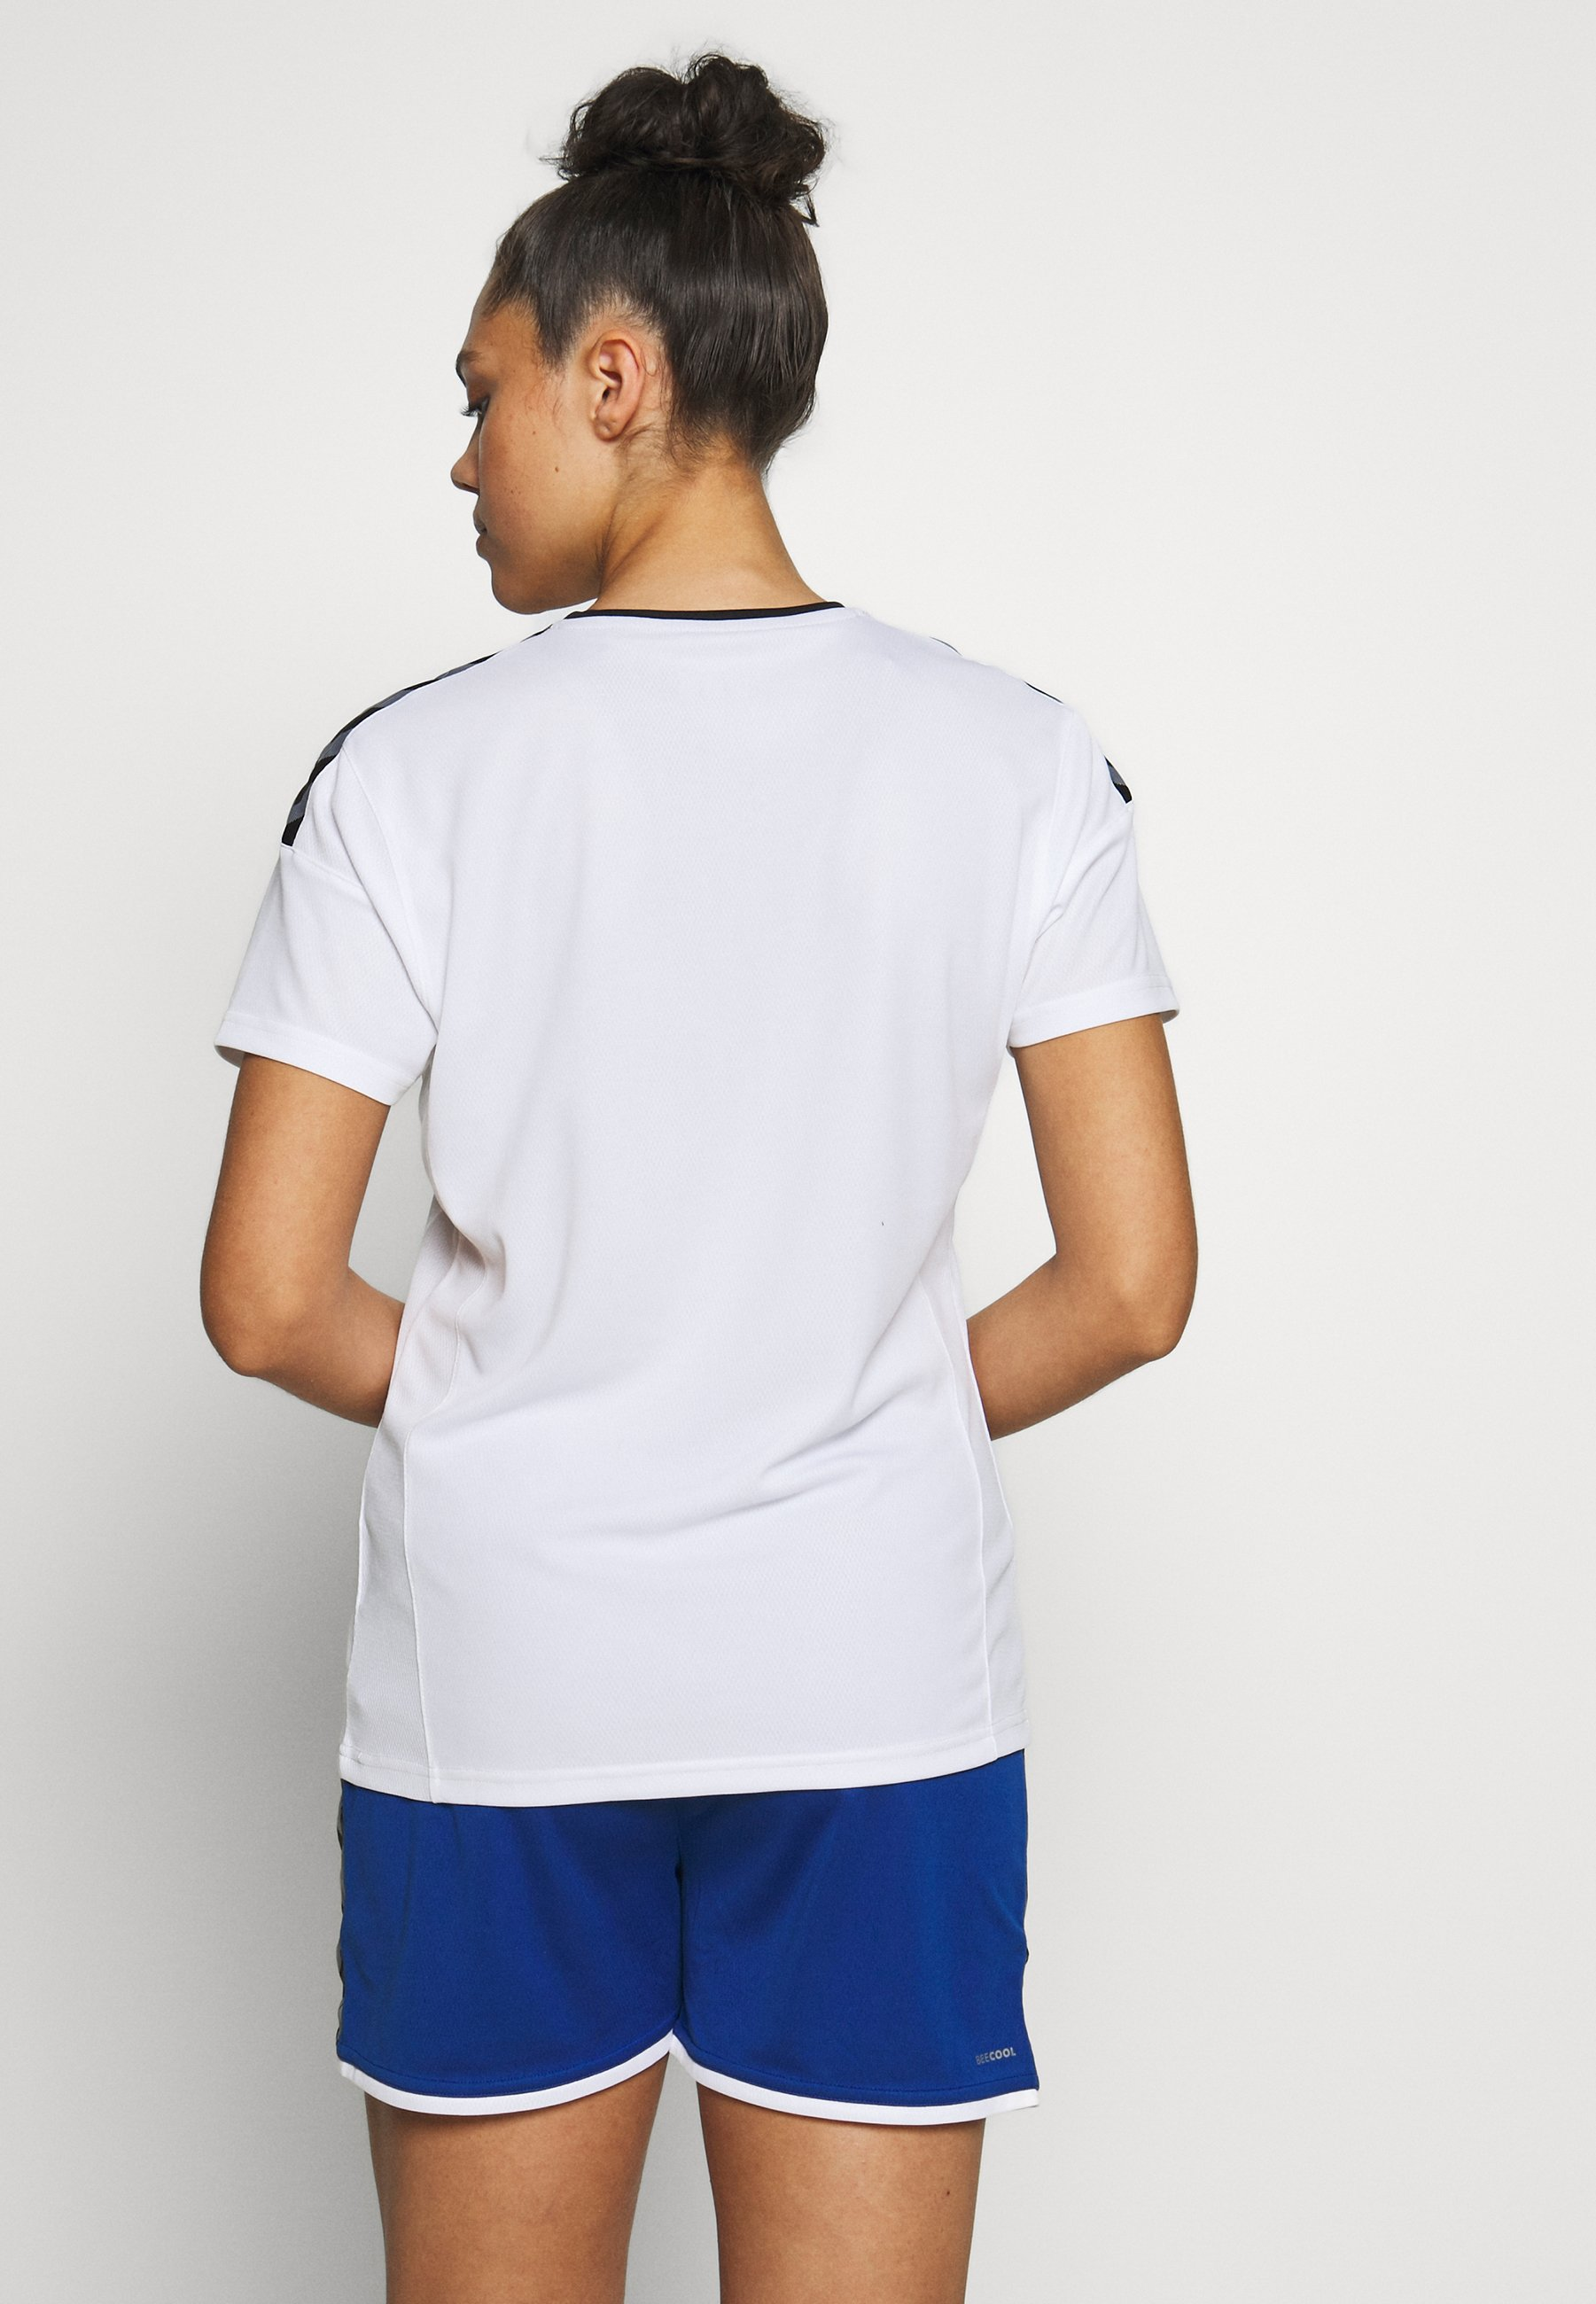 Donna HMLAUTHENTIC  - T-shirt con stampa